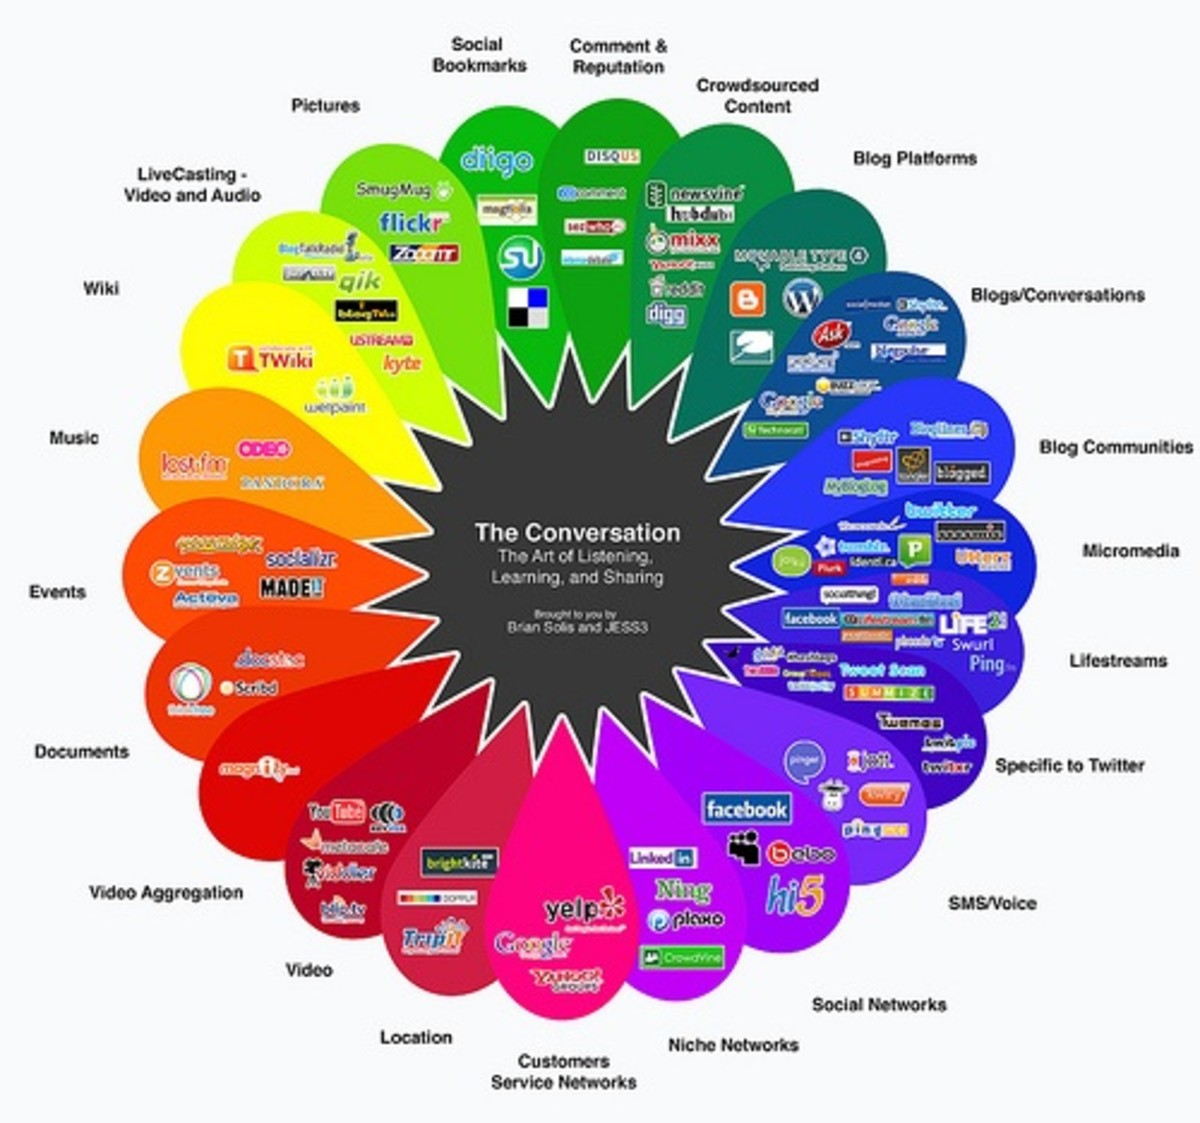 Social Media and Internet Trends for 2010 and beyond